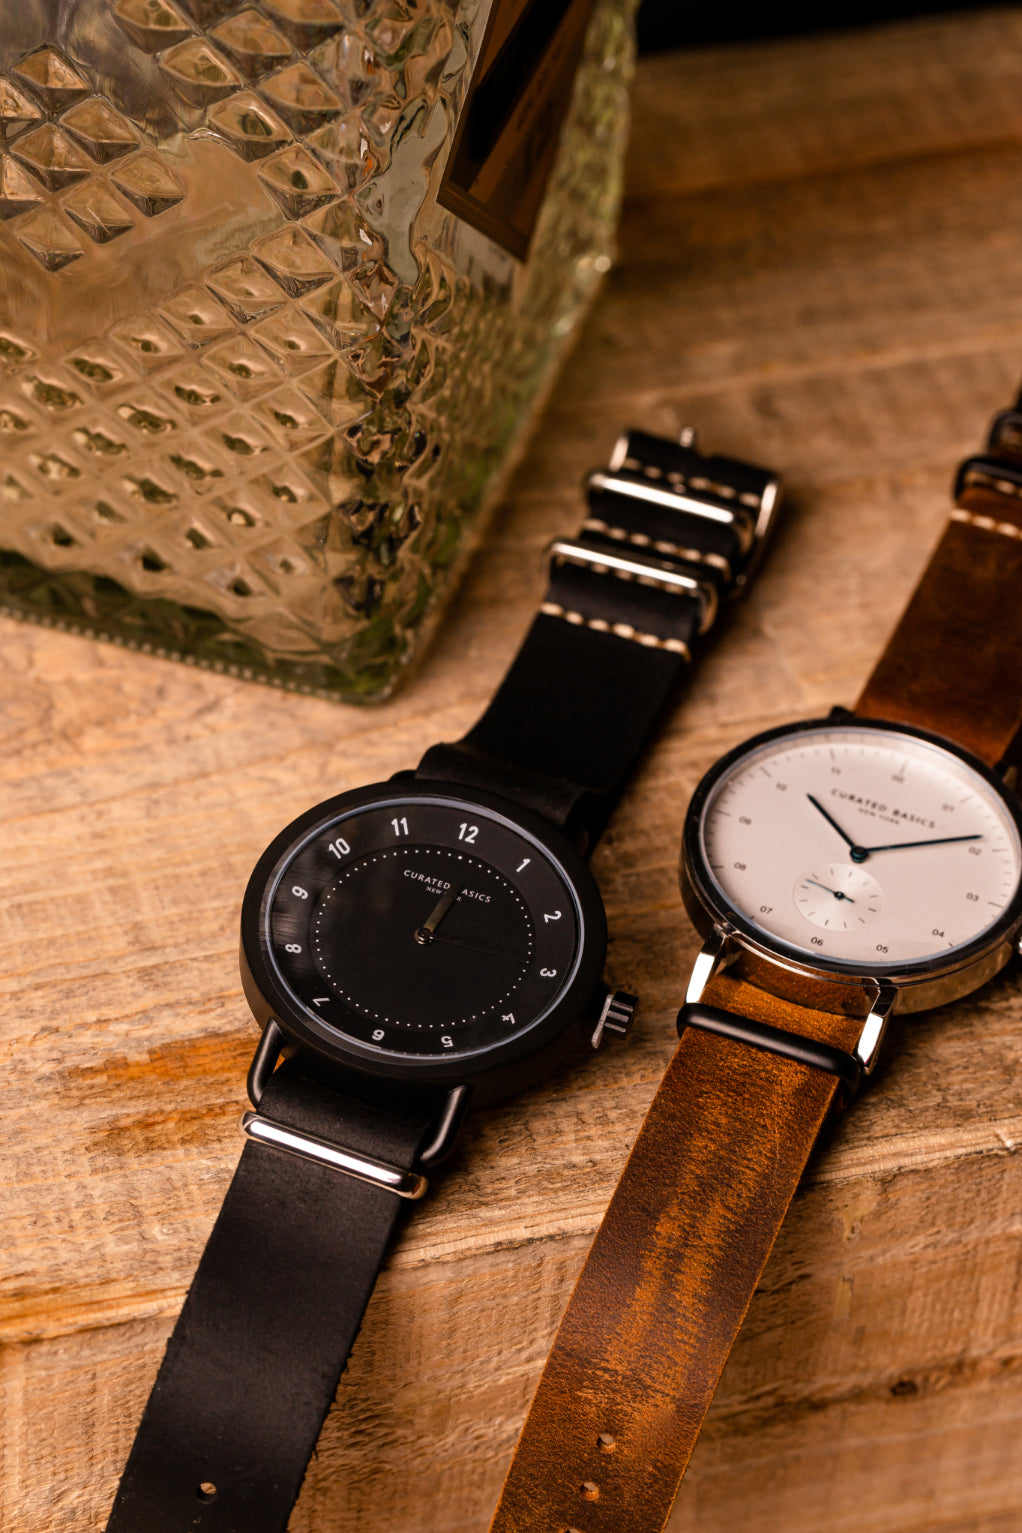 The Chuck Watch on A Black Leather Strap and The Oliver Watch on a Brown Leather Strap Over A Wood Block With An Empty Decanter Behind   Style Standard